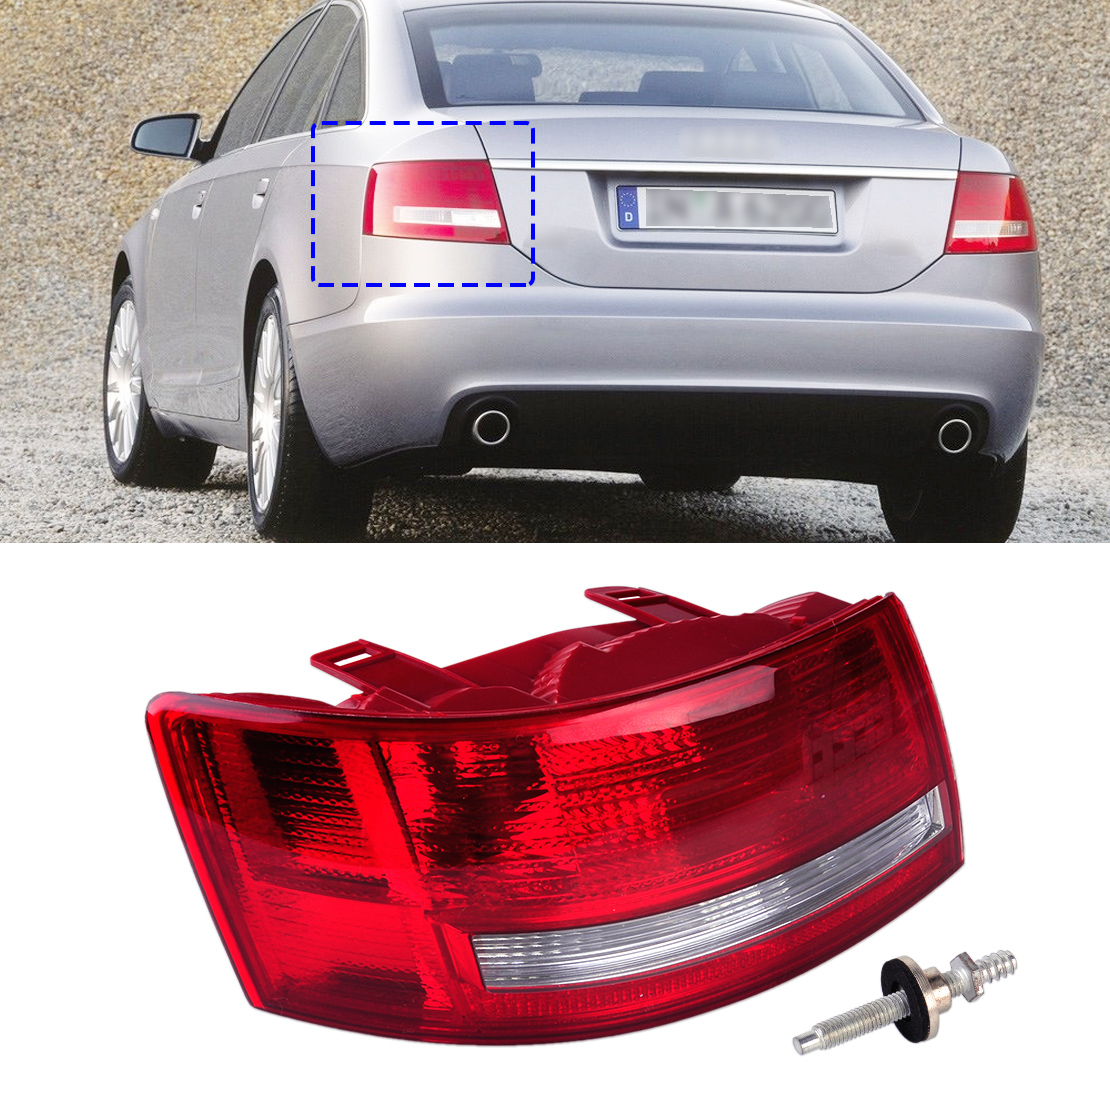 Rear Tail Left Light Taillight Assembly Lamp Housing without Bulb 4F5 945 095 L fit for Audi A6 /A6 Quattro Sedan 2005 2006 -08 free shipping for skoda octavia sedan a5 2005 2006 2007 2008 left side rear lamp tail light